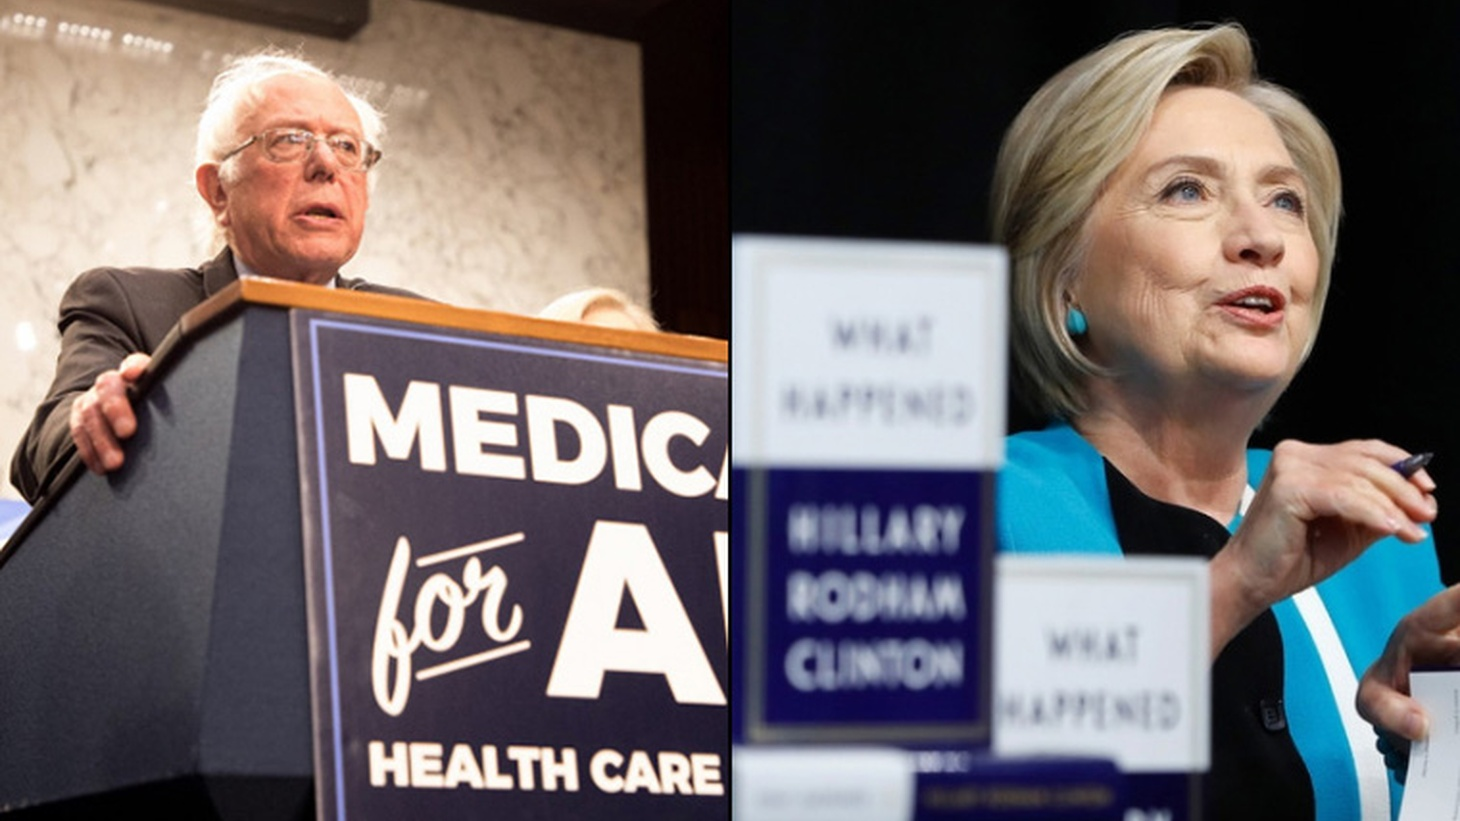 The split between grass roots Democrats and Party regulars, with Hillary Clinton and Bernie Sanders back in the spotlight this week.